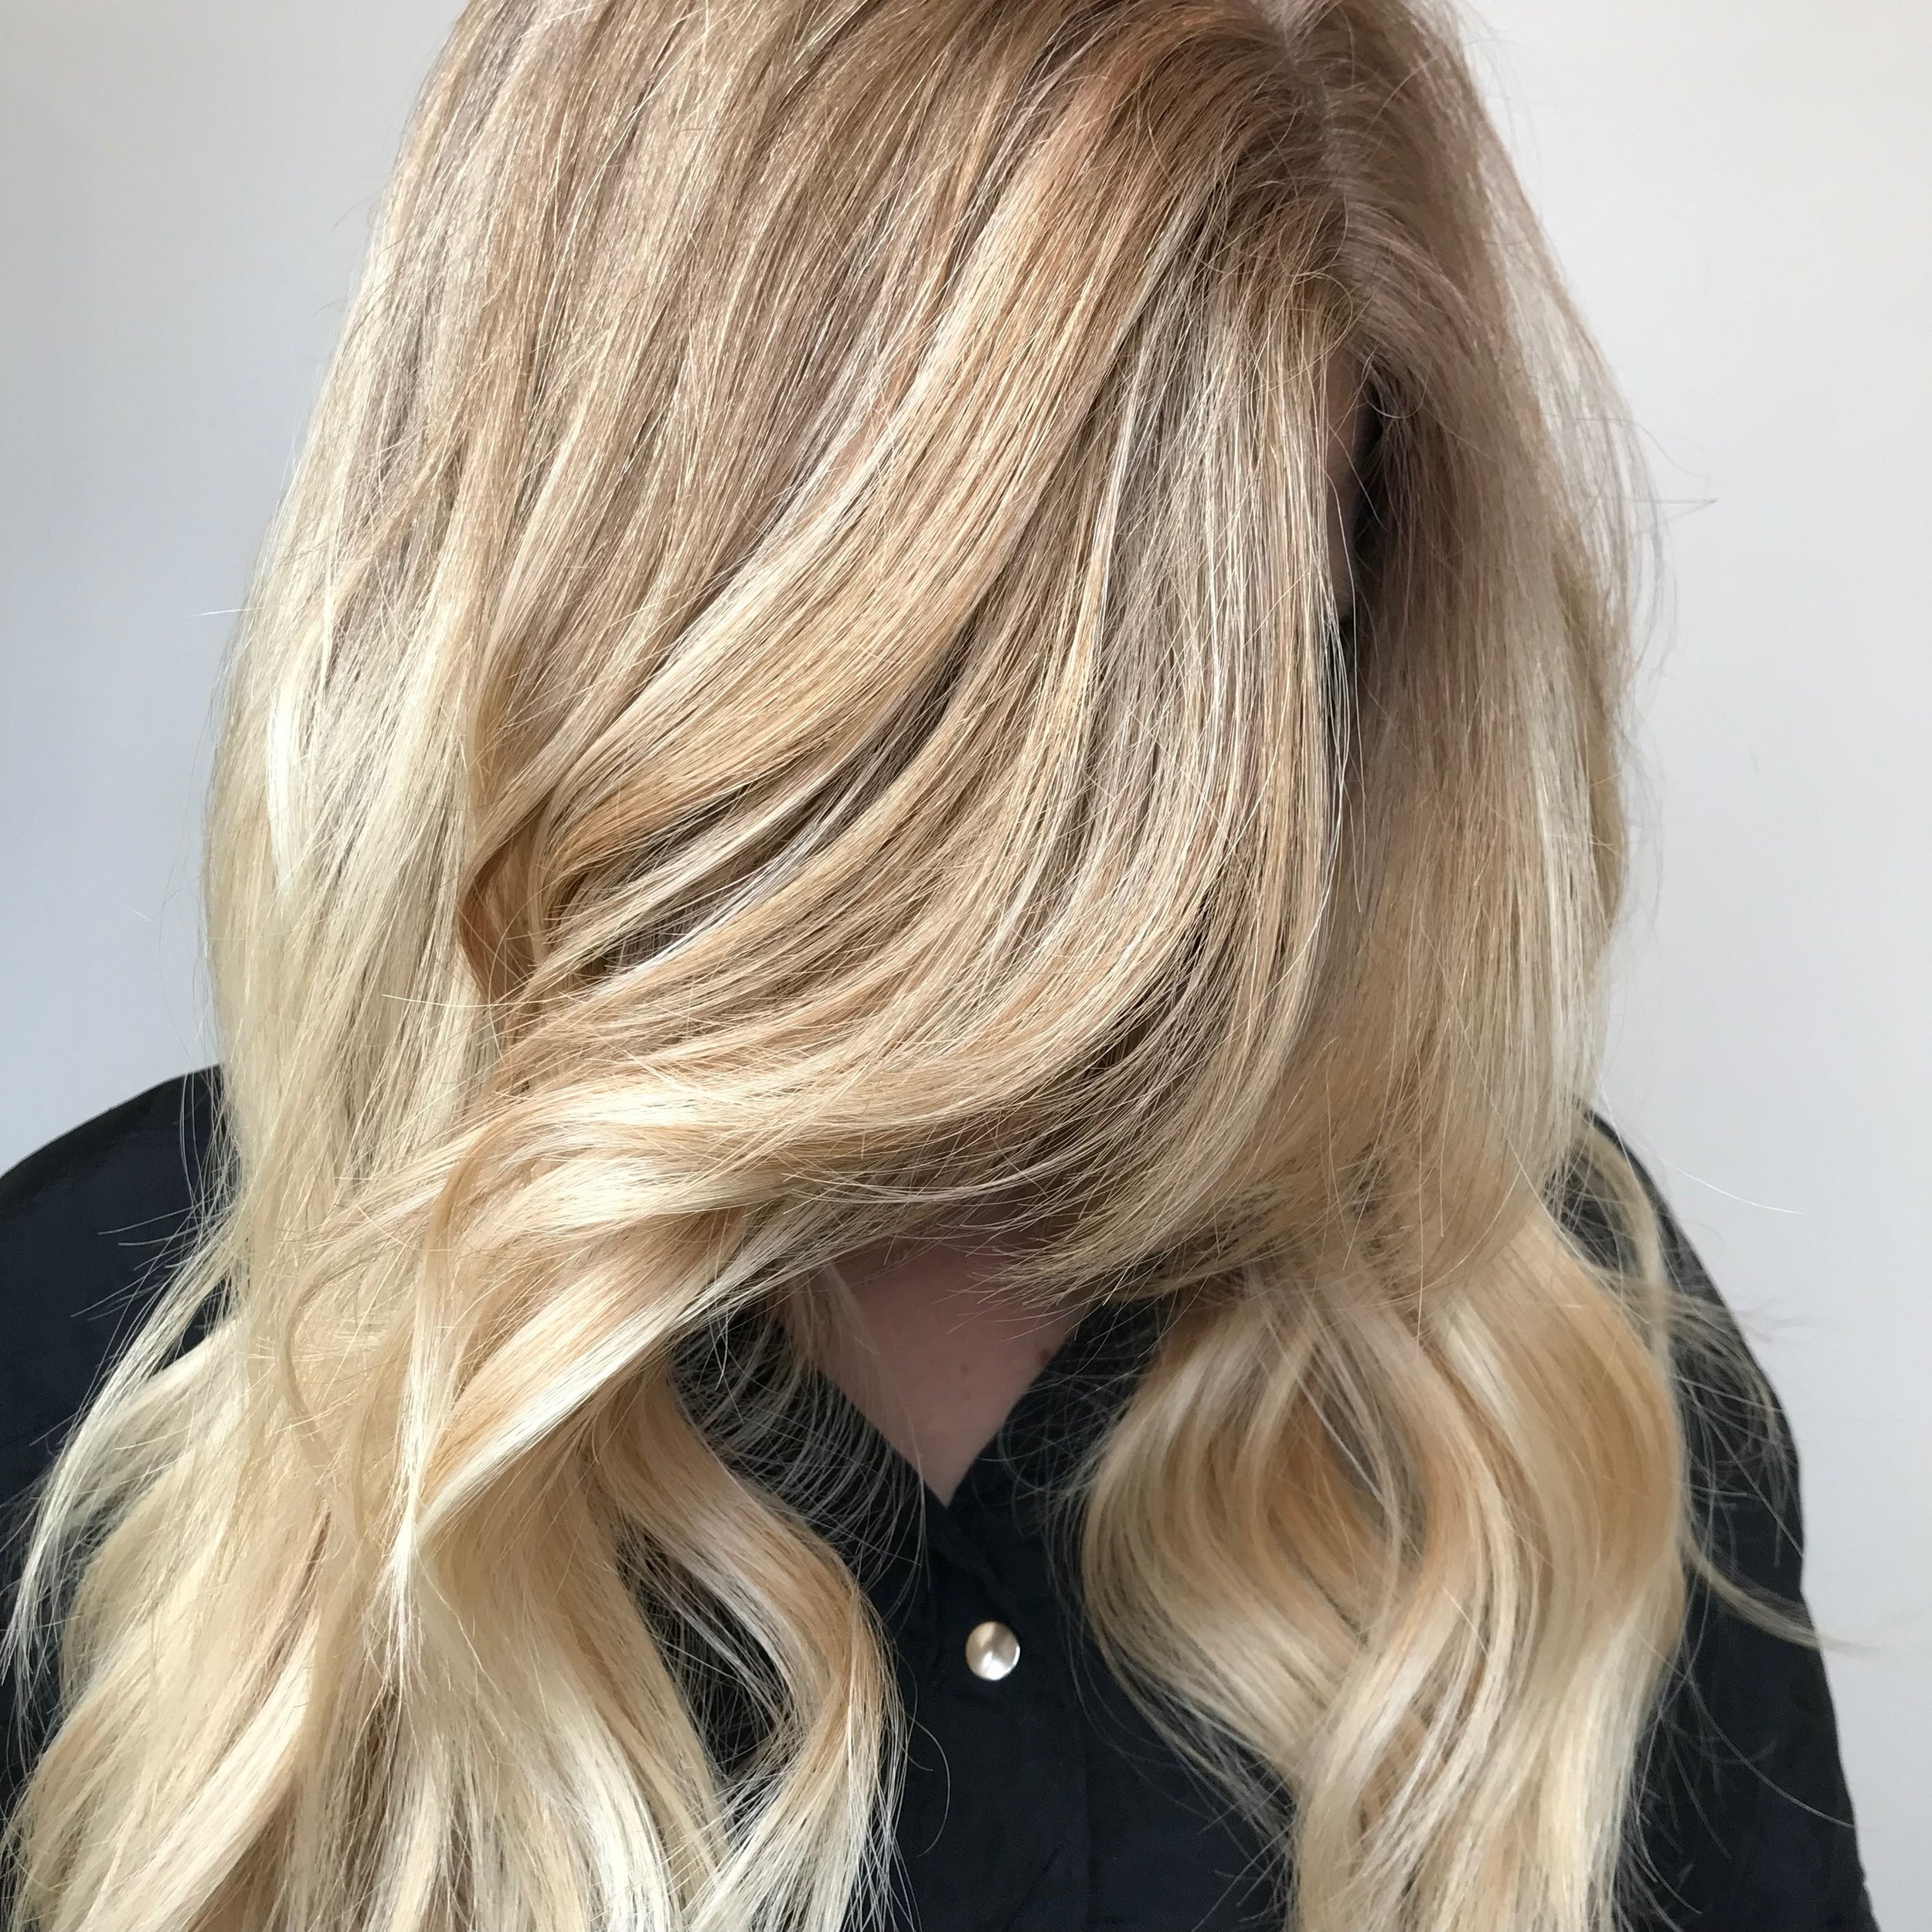 Bright Blonde - Are you in search of that perfect shade of blonde? A blonde full of dimension and many tones may be as close as it gets to that perfect blonde. Ask for heavier babylights that mixes many shades throughout your whole head and your stylist can achieve this look on you!